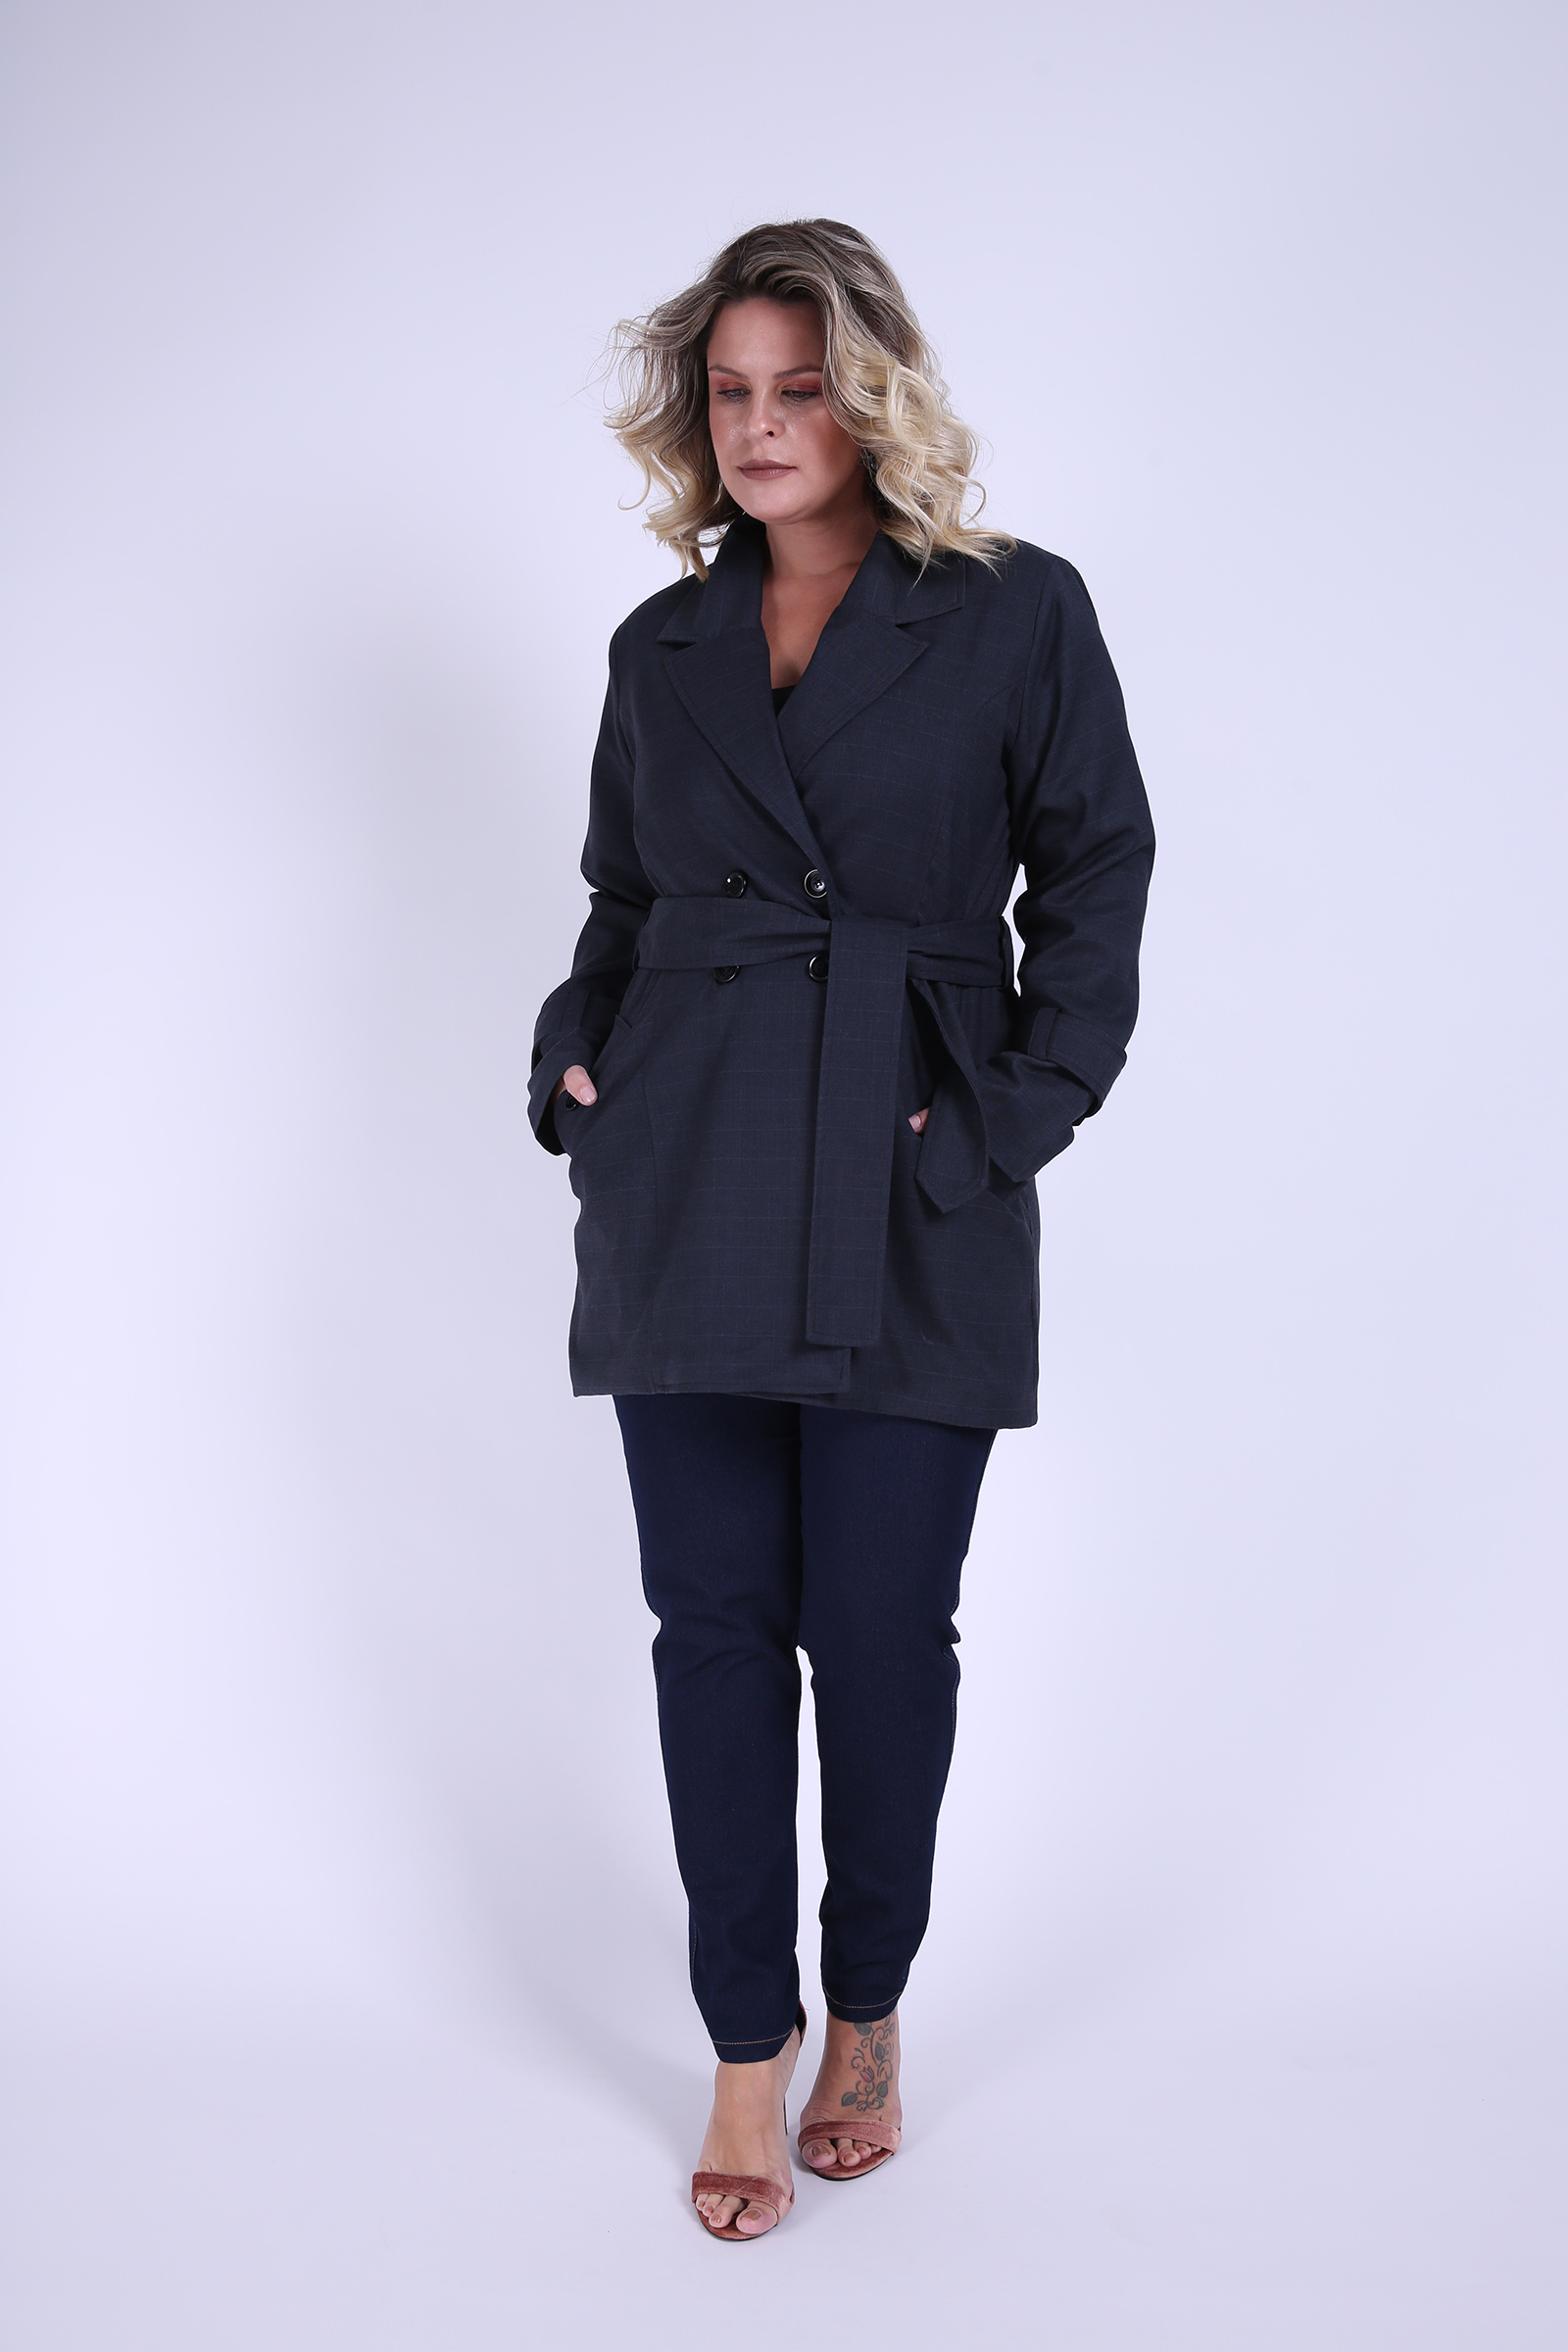 Use o trench Coat kauê Plus Size